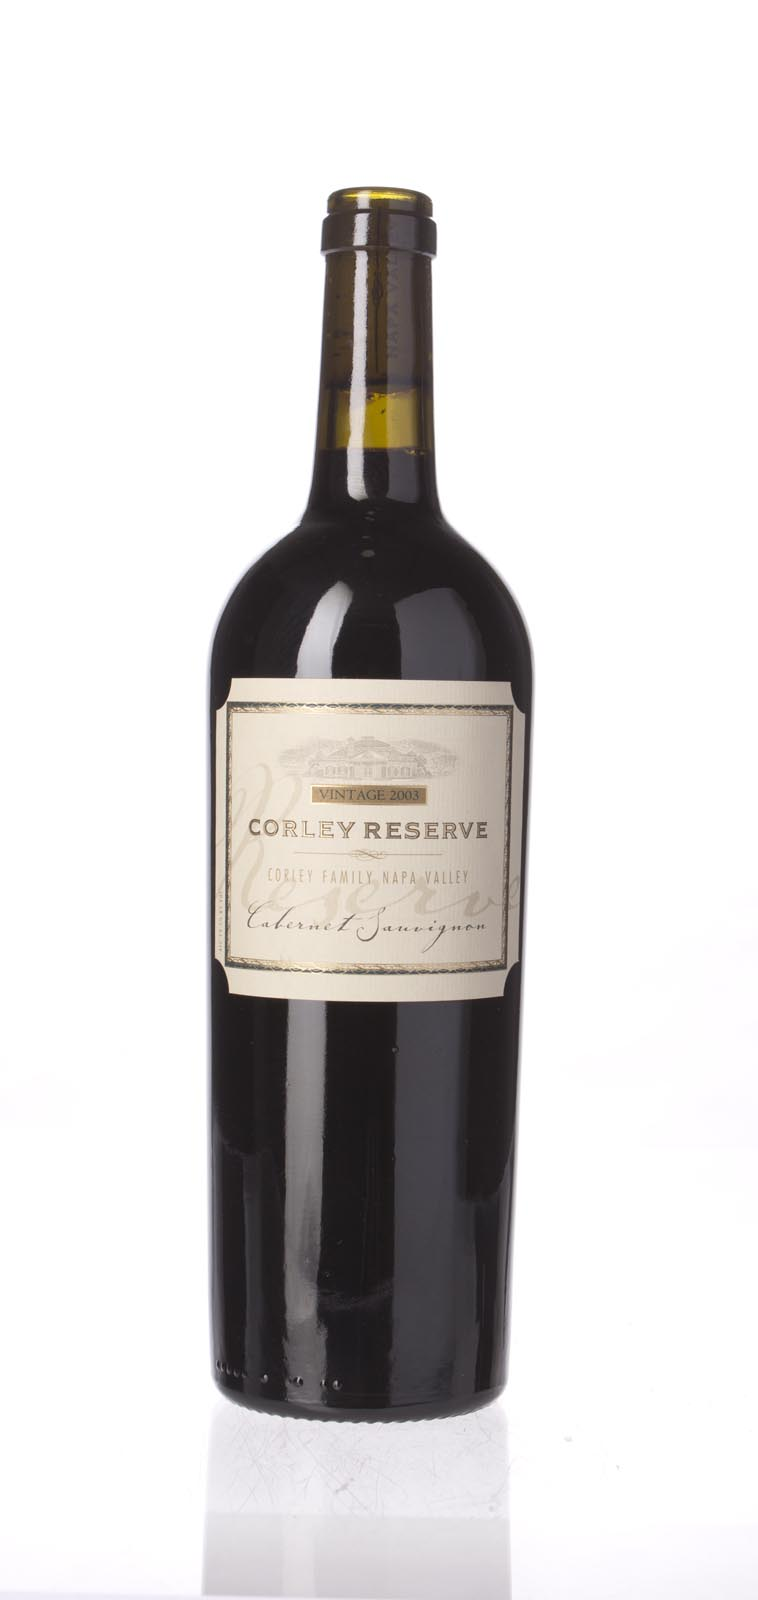 Monticello Vineyards Cabernet Sauvignon Corley Reserve 2003, 750ml () from The BPW - Merchants of rare and fine wines.